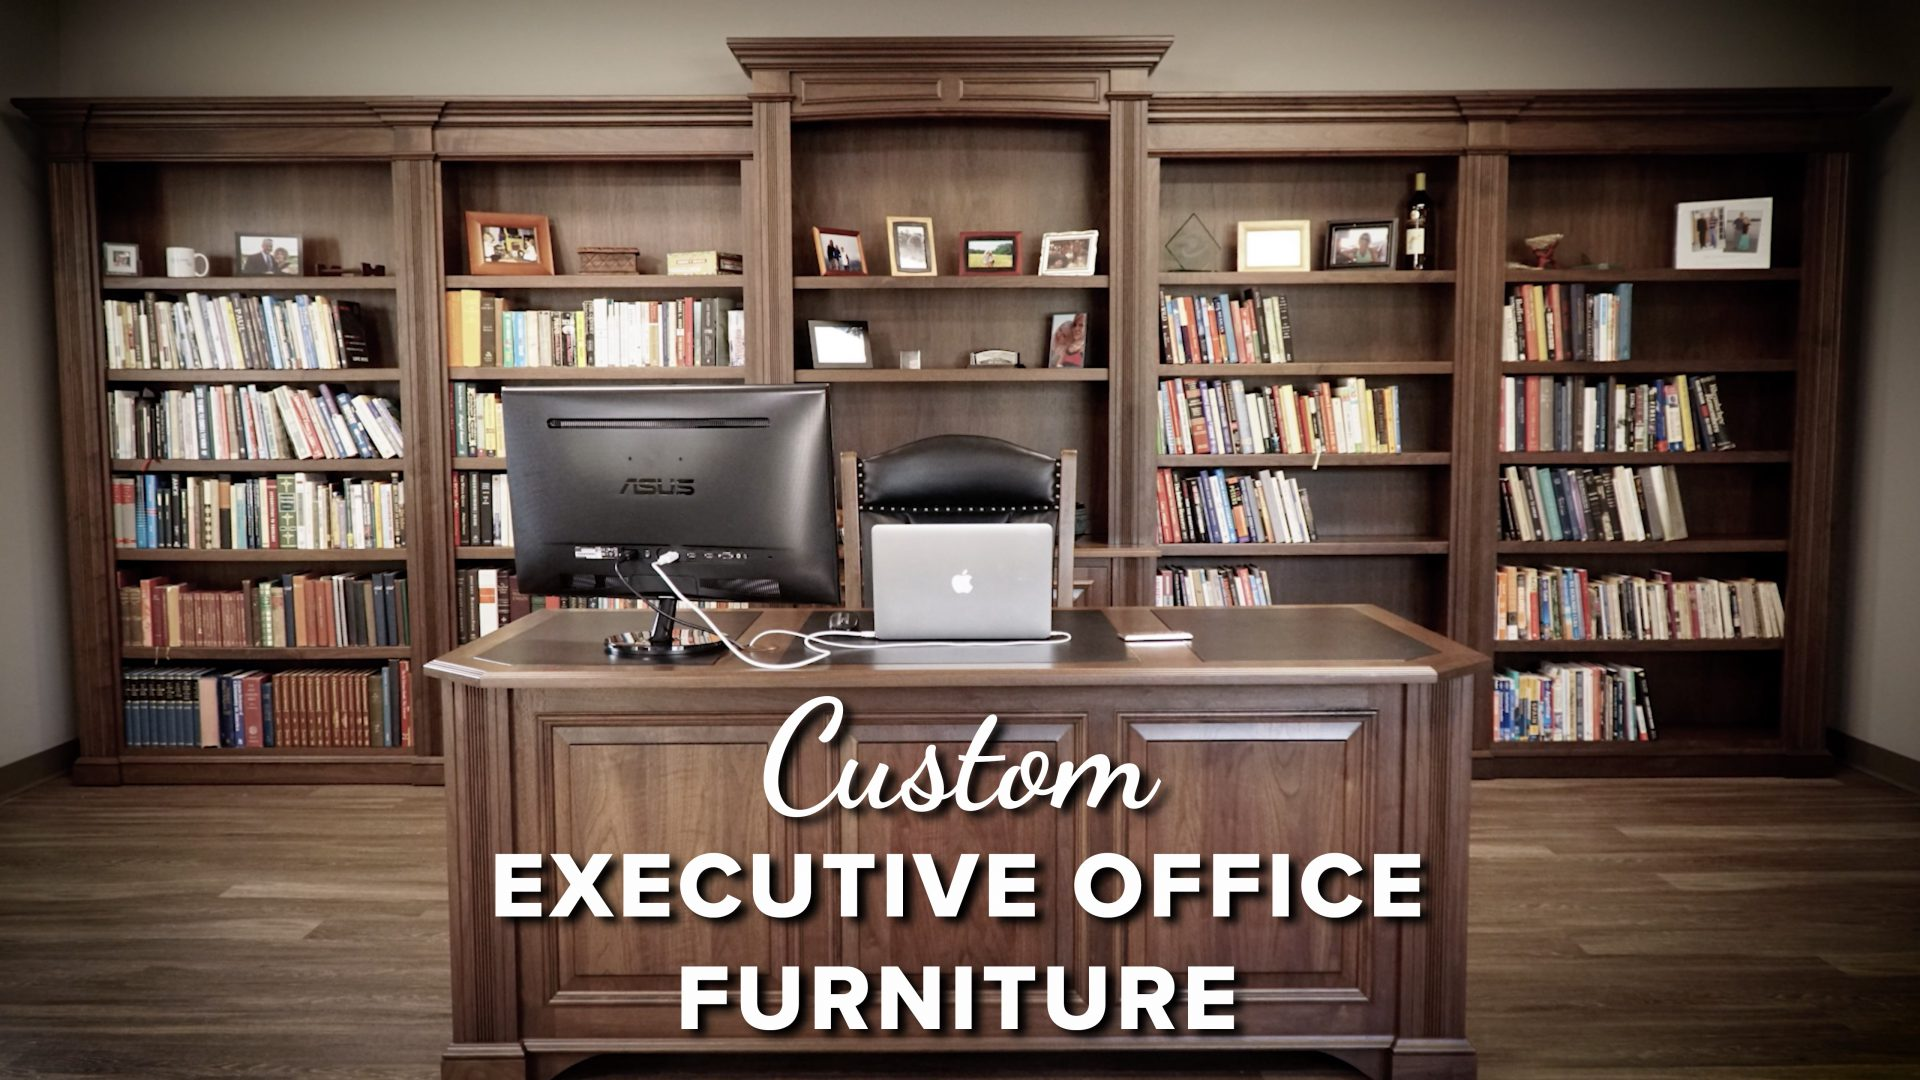 Custom Executive Office Furniture Video Title